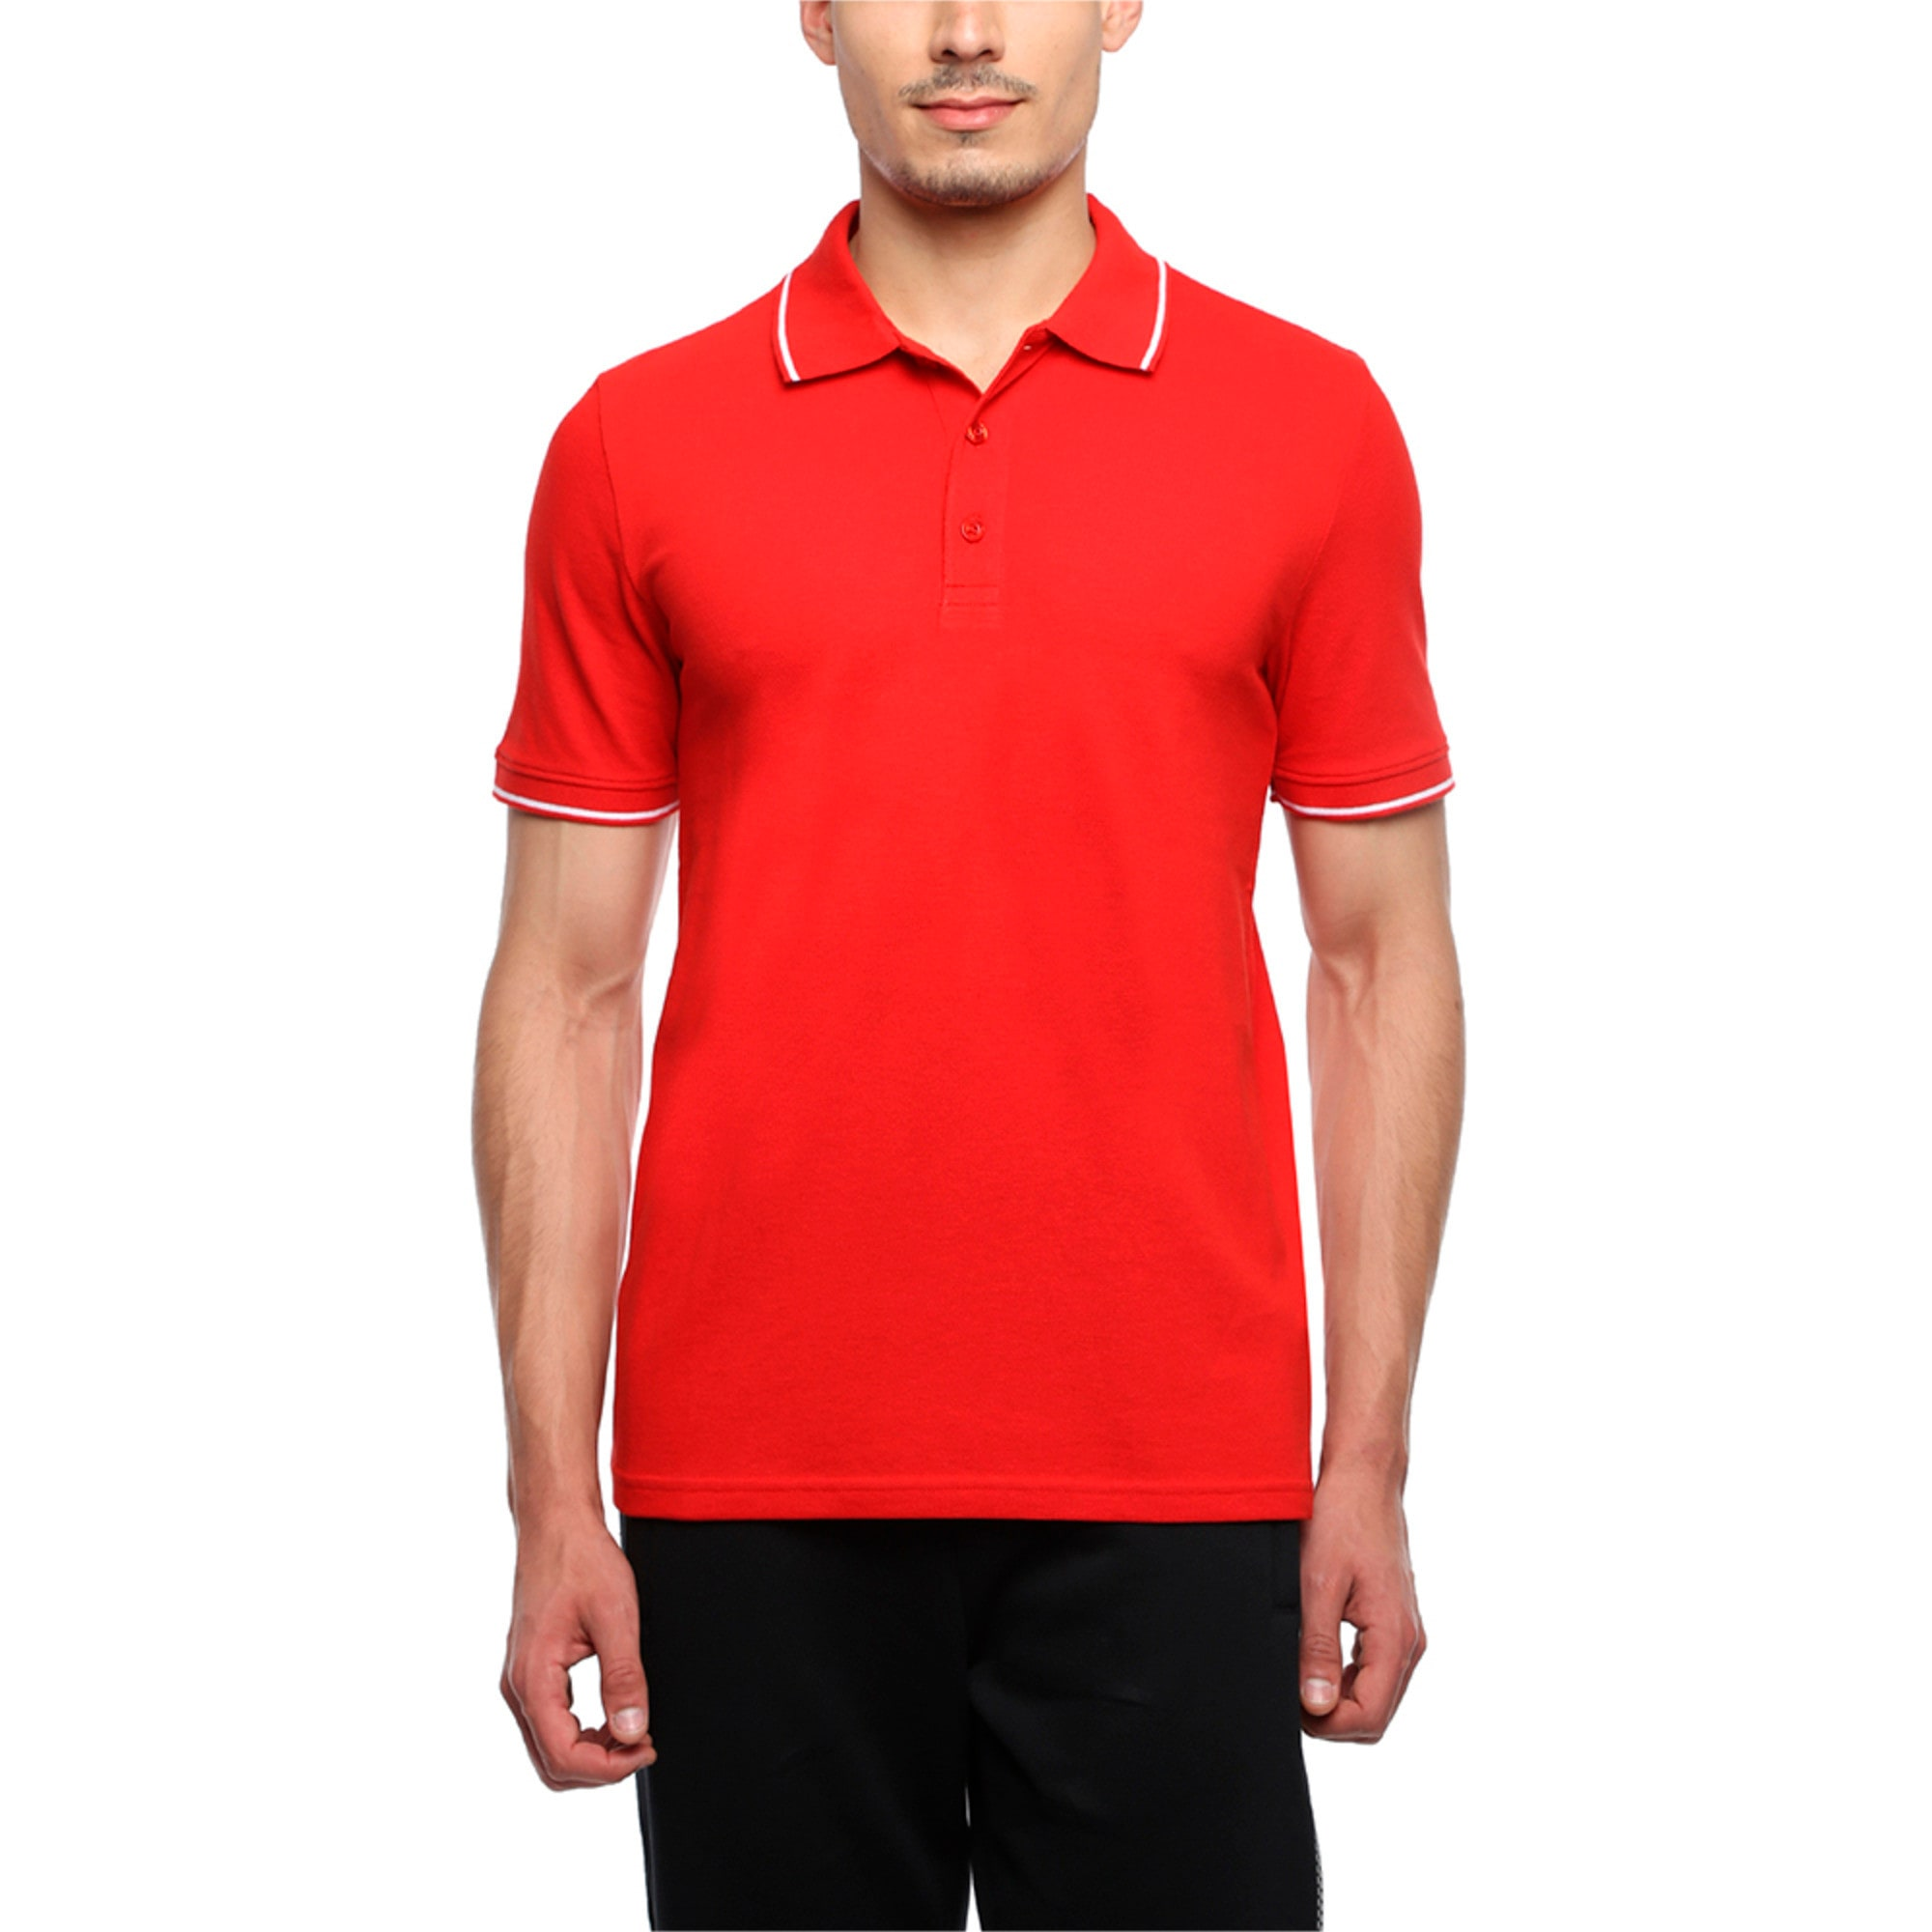 Thumbnail 4 of Men s ESS Tipping Polo, Puma Red, medium-IND